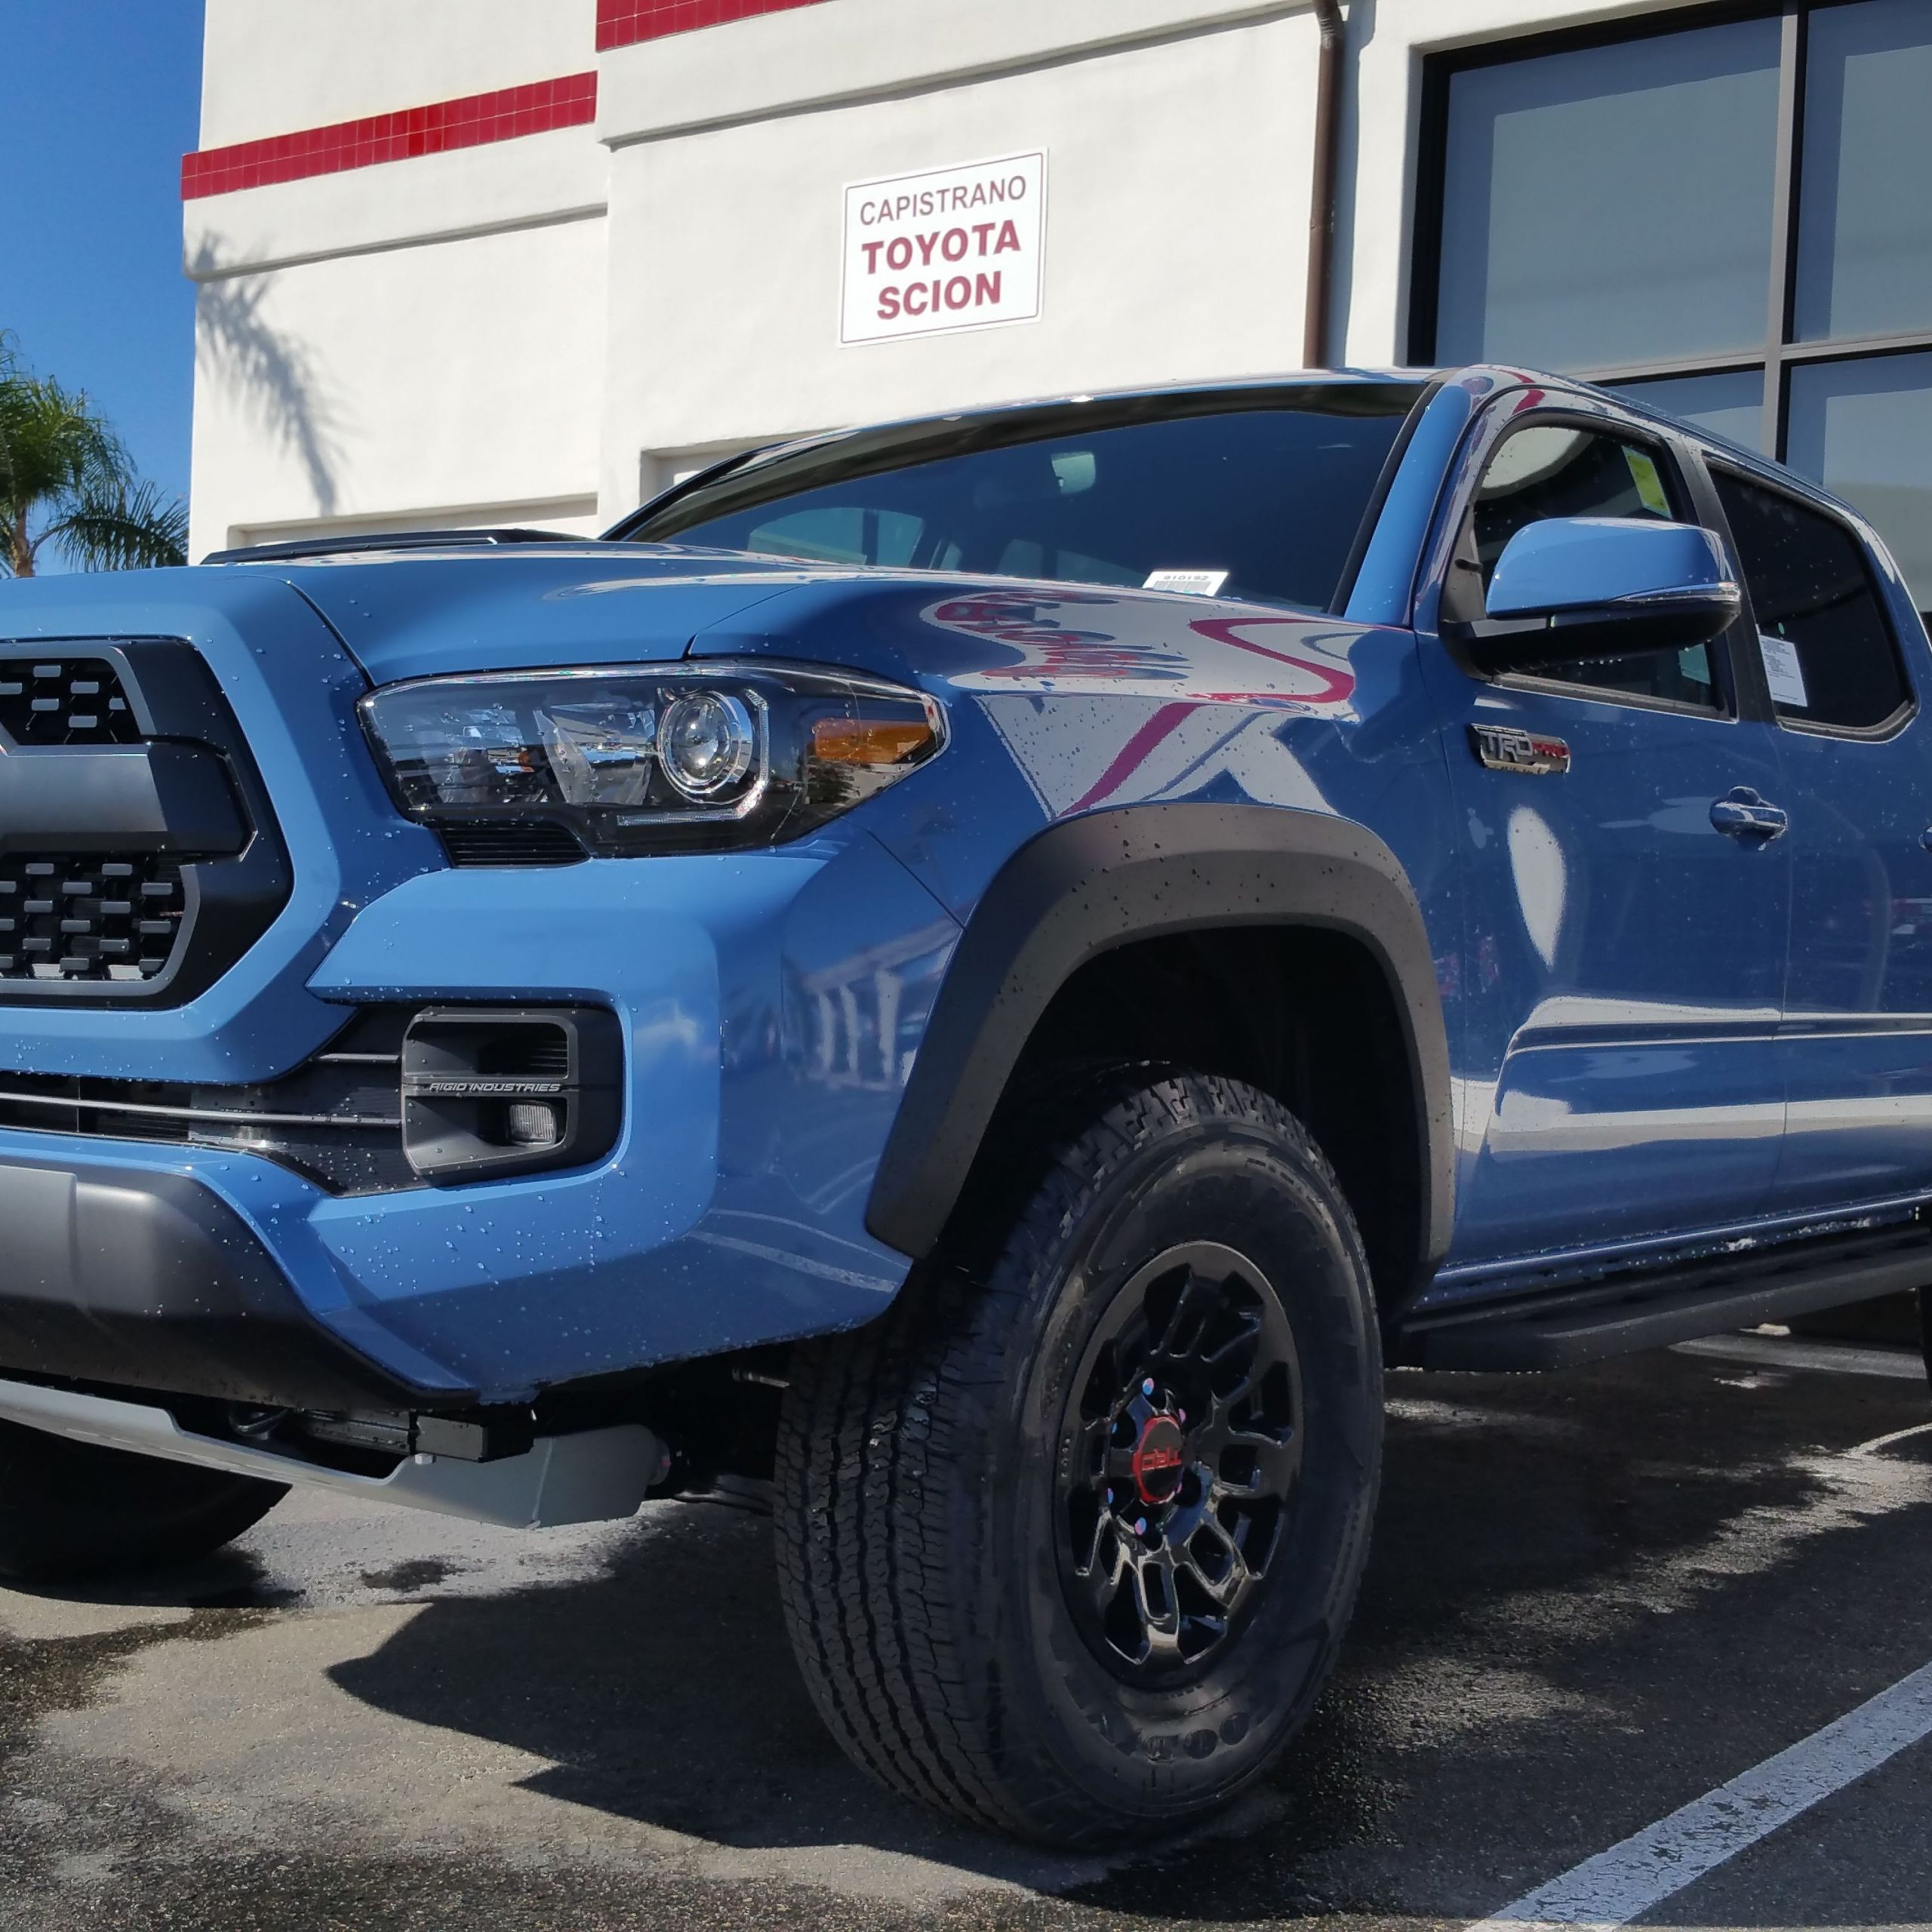 2015 Tacoma Trd Pro Fresh Cavalry Blue Stop by Our Dealership today